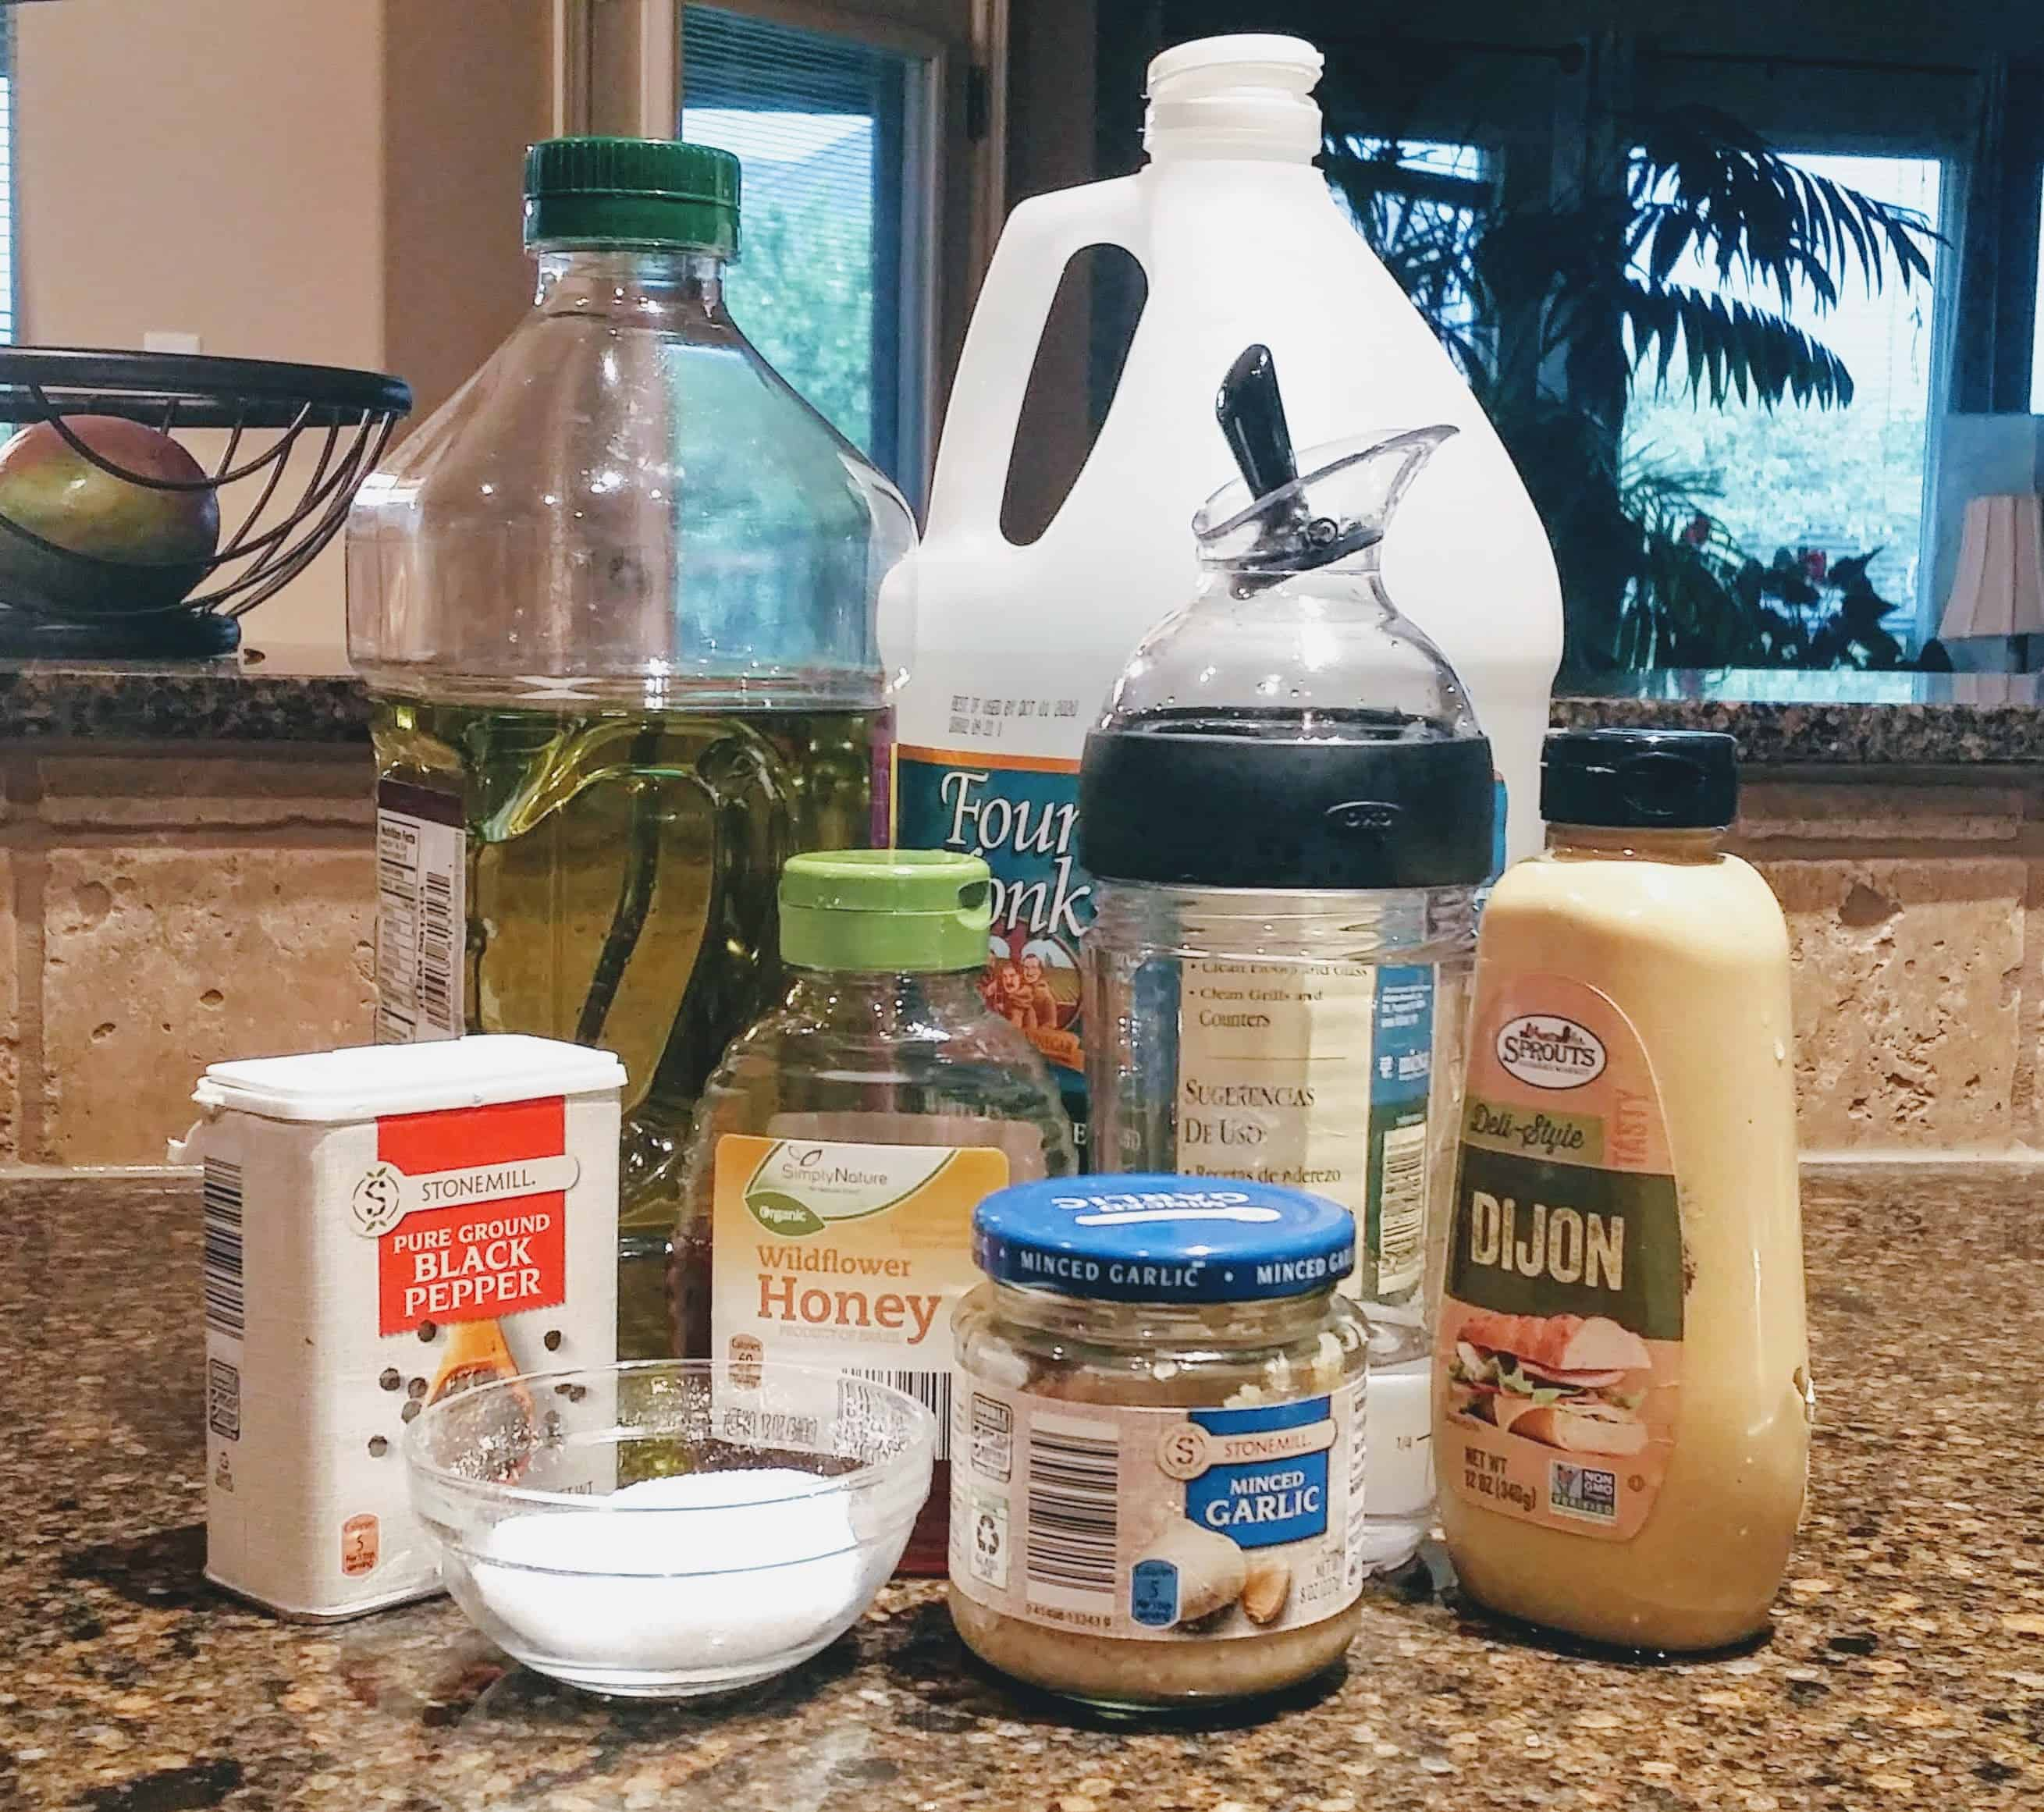 Super Easy and Clean Salad Dressing | The only homemade salad dressing you will ever Need | My kids dip everything in this salad dressing #healthyeating #healthyfood #eatingclean #eatingwell #groceryhaul #homemade